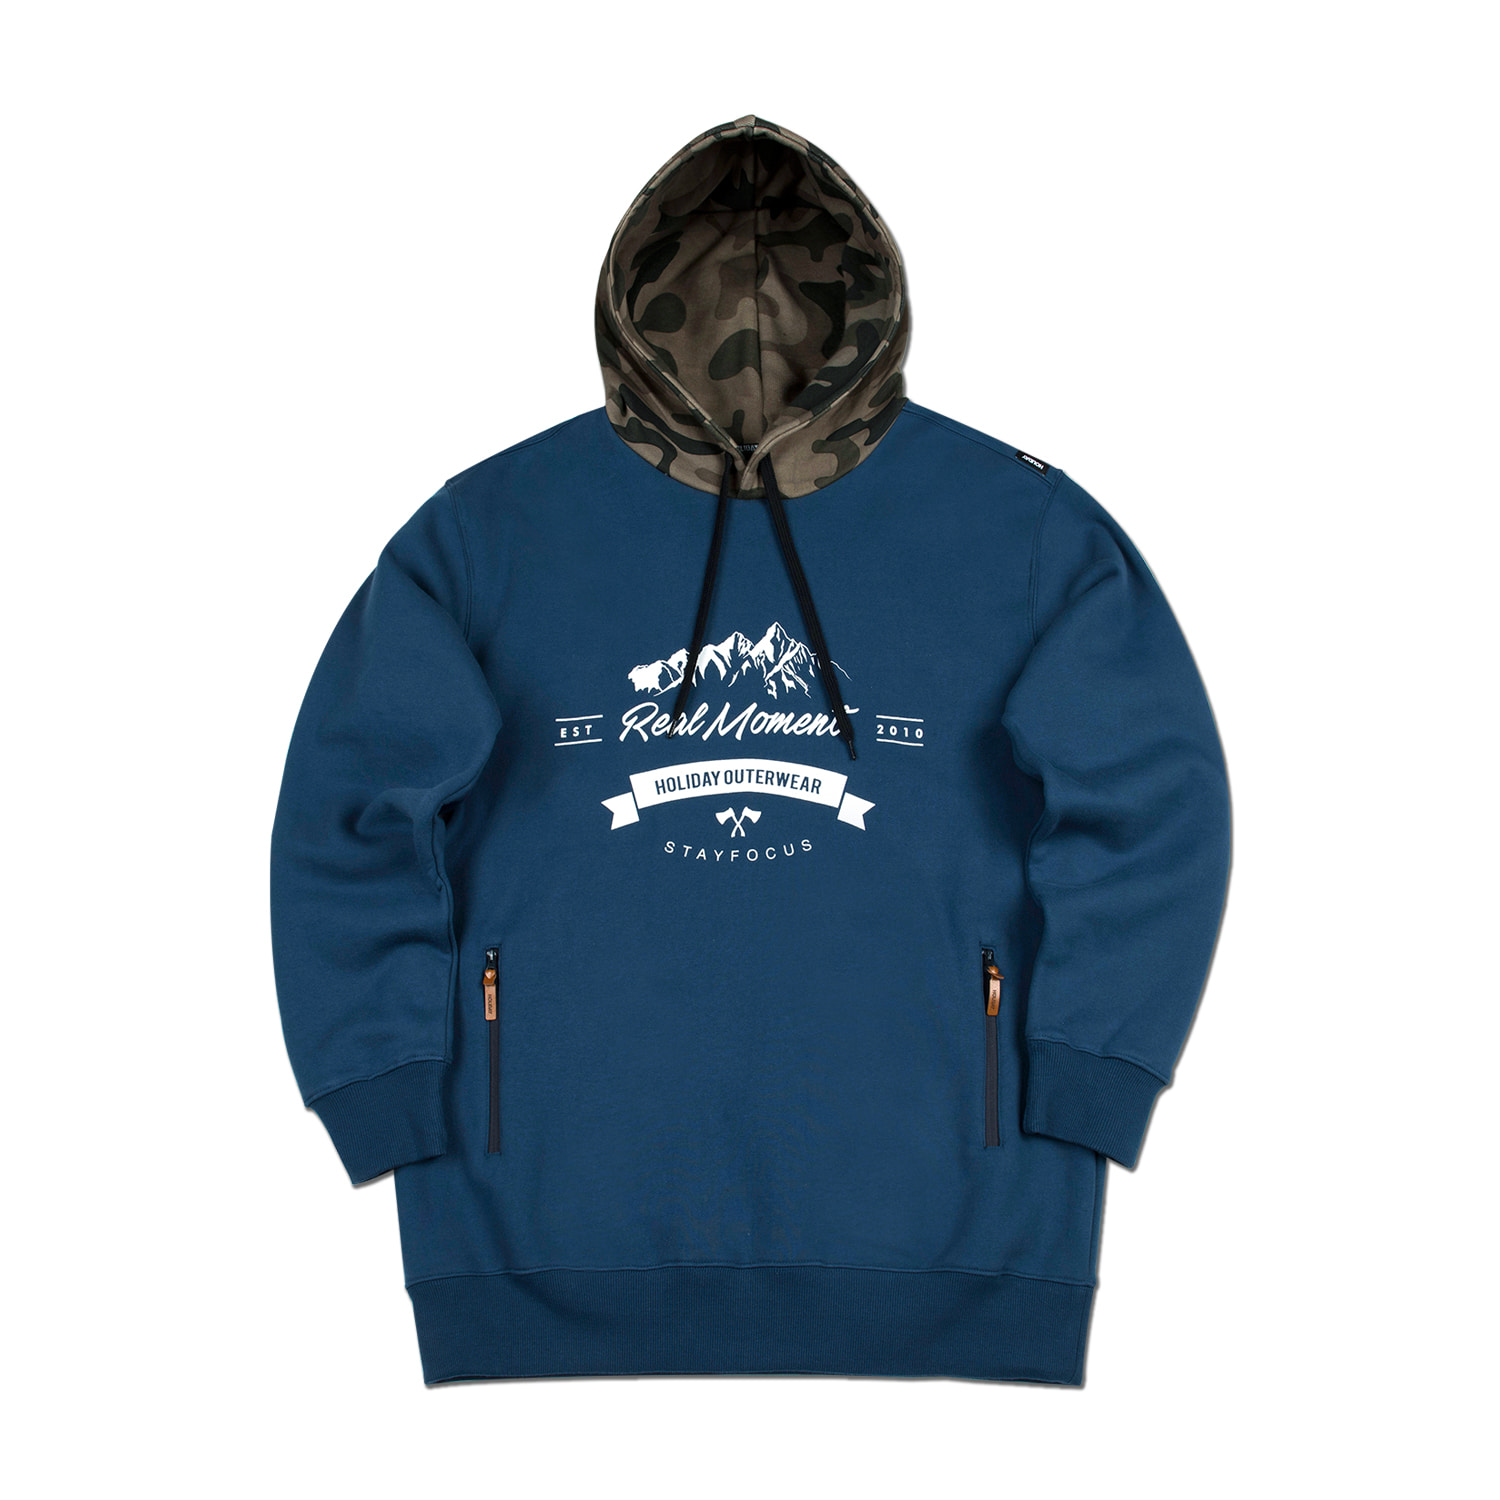 STAMP hoodie - blueHOLIDAY OUTERWEAR